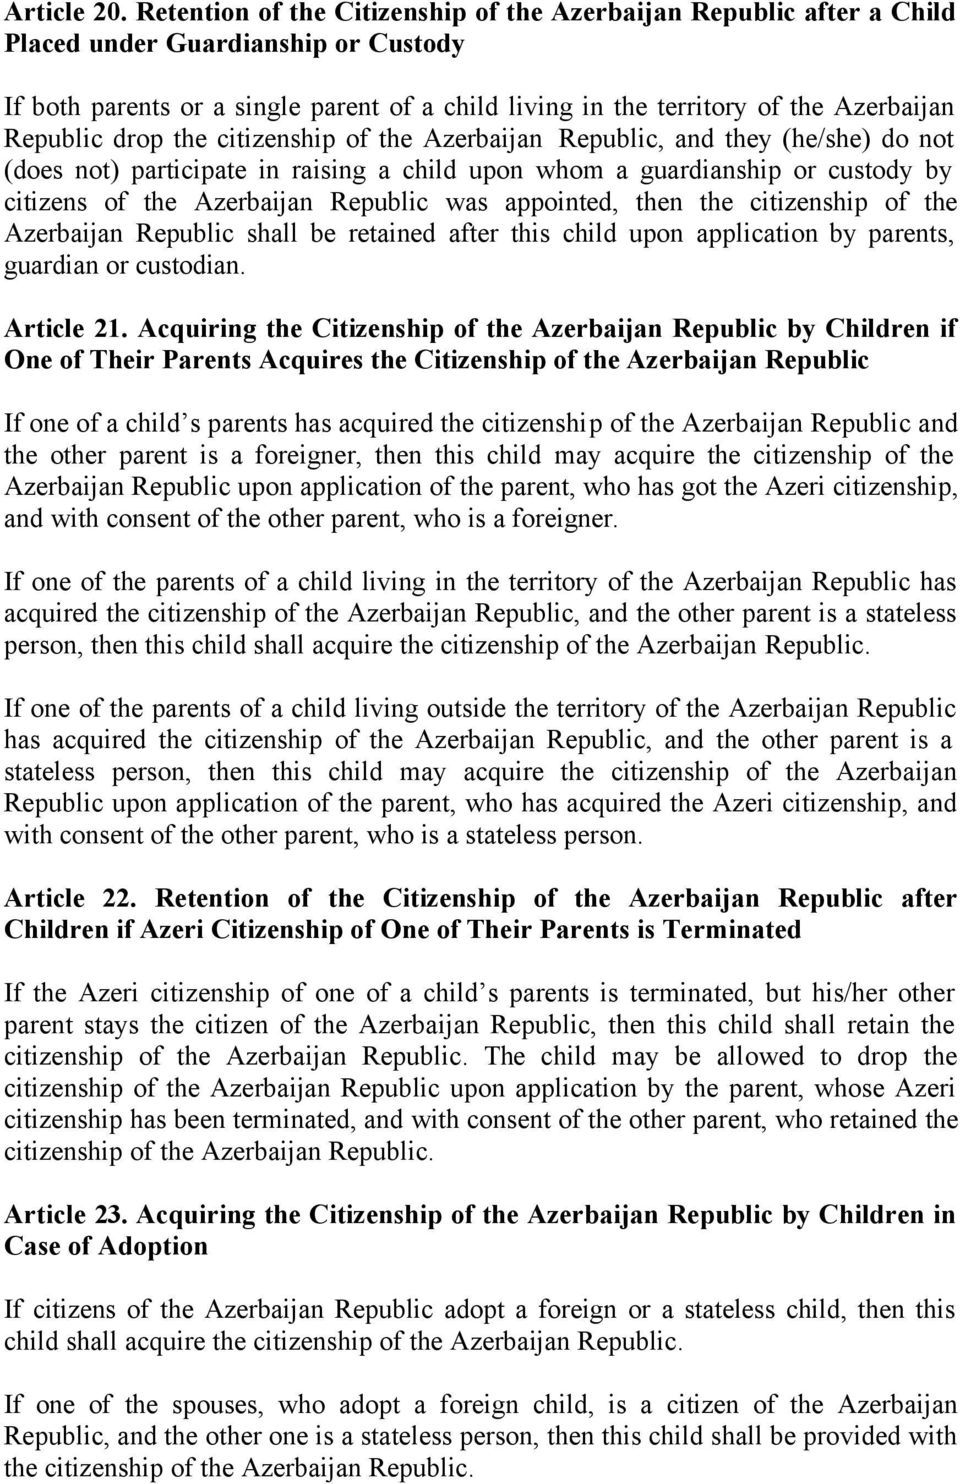 Republic drop the citizenship of the Azerbaijan Republic, and they (he/she) do not (does not) participate in raising a child upon whom a guardianship or custody by citizens of the Azerbaijan Republic